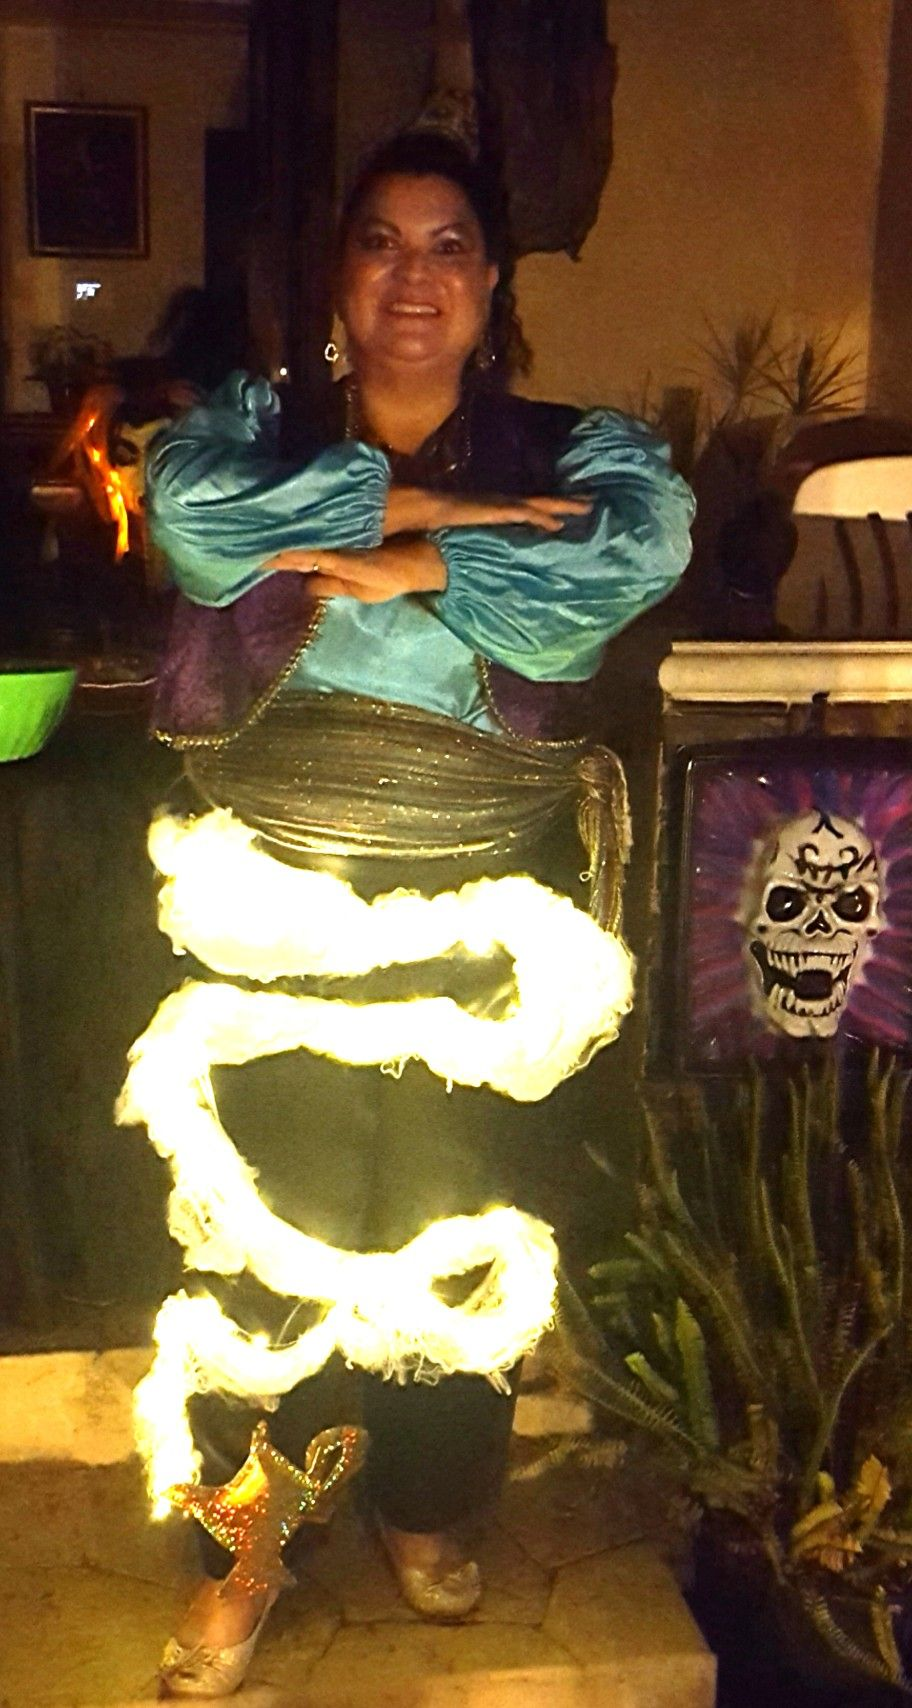 Magic Genie in a l& costume. Things needed for costume colorful shirt vest  sc 1 st  Pinterest & Magic Genie in a lamp costume. Things needed for costume: colorful ...